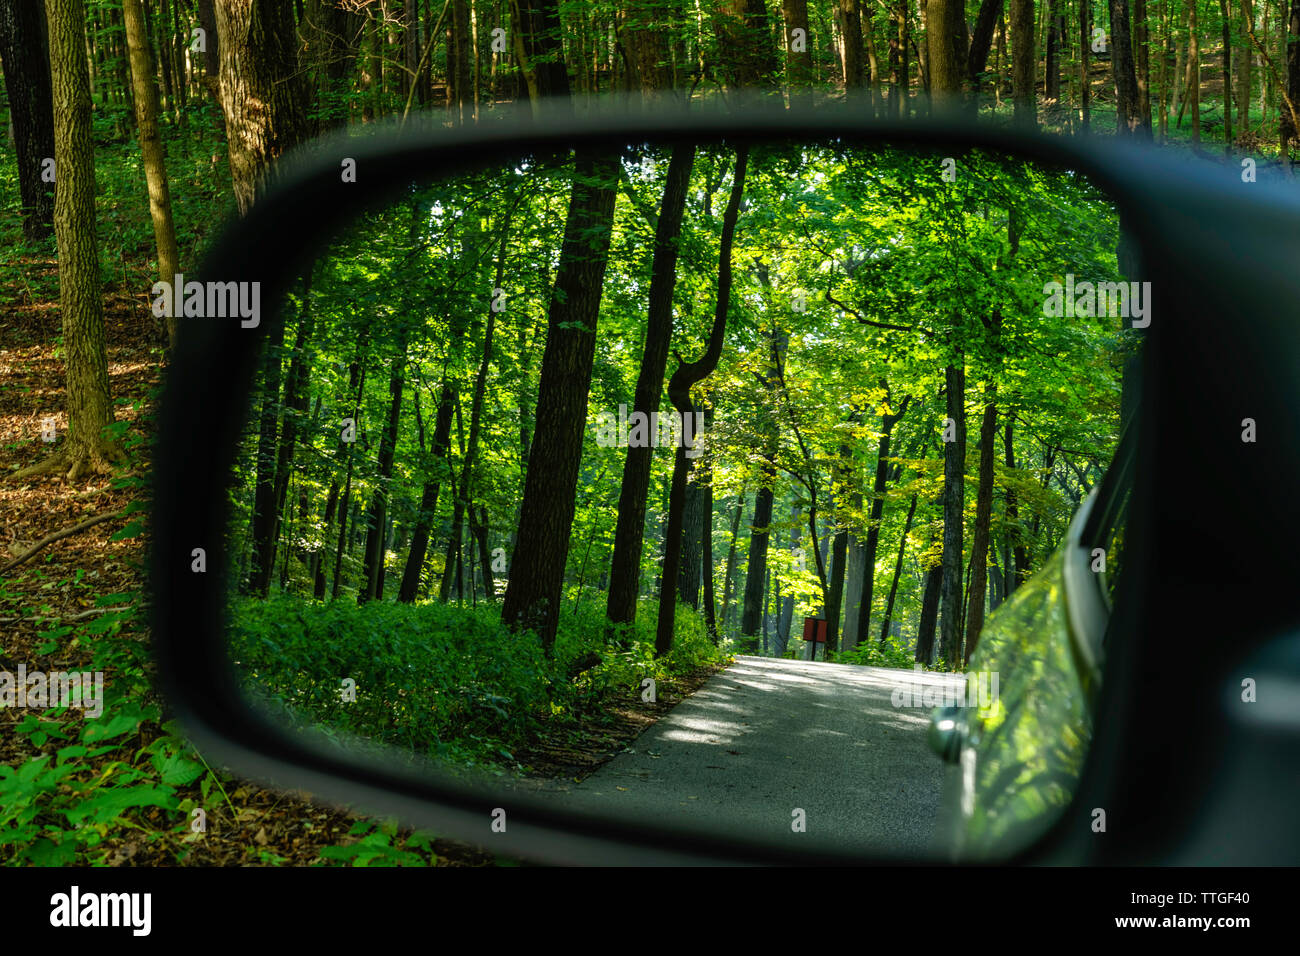 Silhouette of tree trunk with odd curve in rear-view mirror in woods - Stock Image